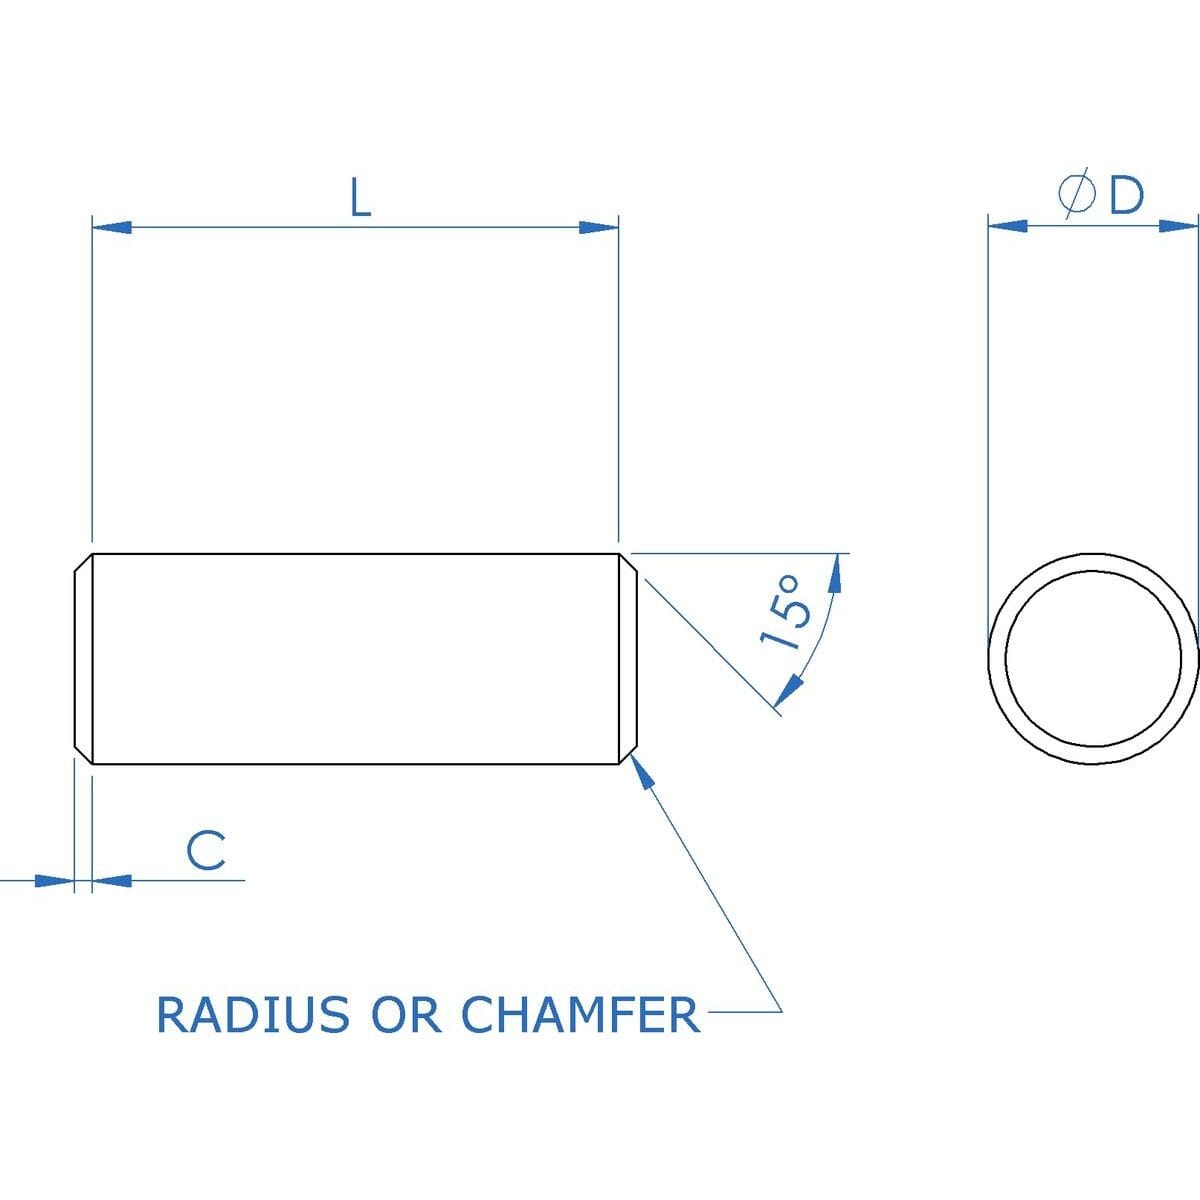 8mm (m6) x 30mm Dowel Pins (DIN 7) - A1 Stainless Steel Drawing